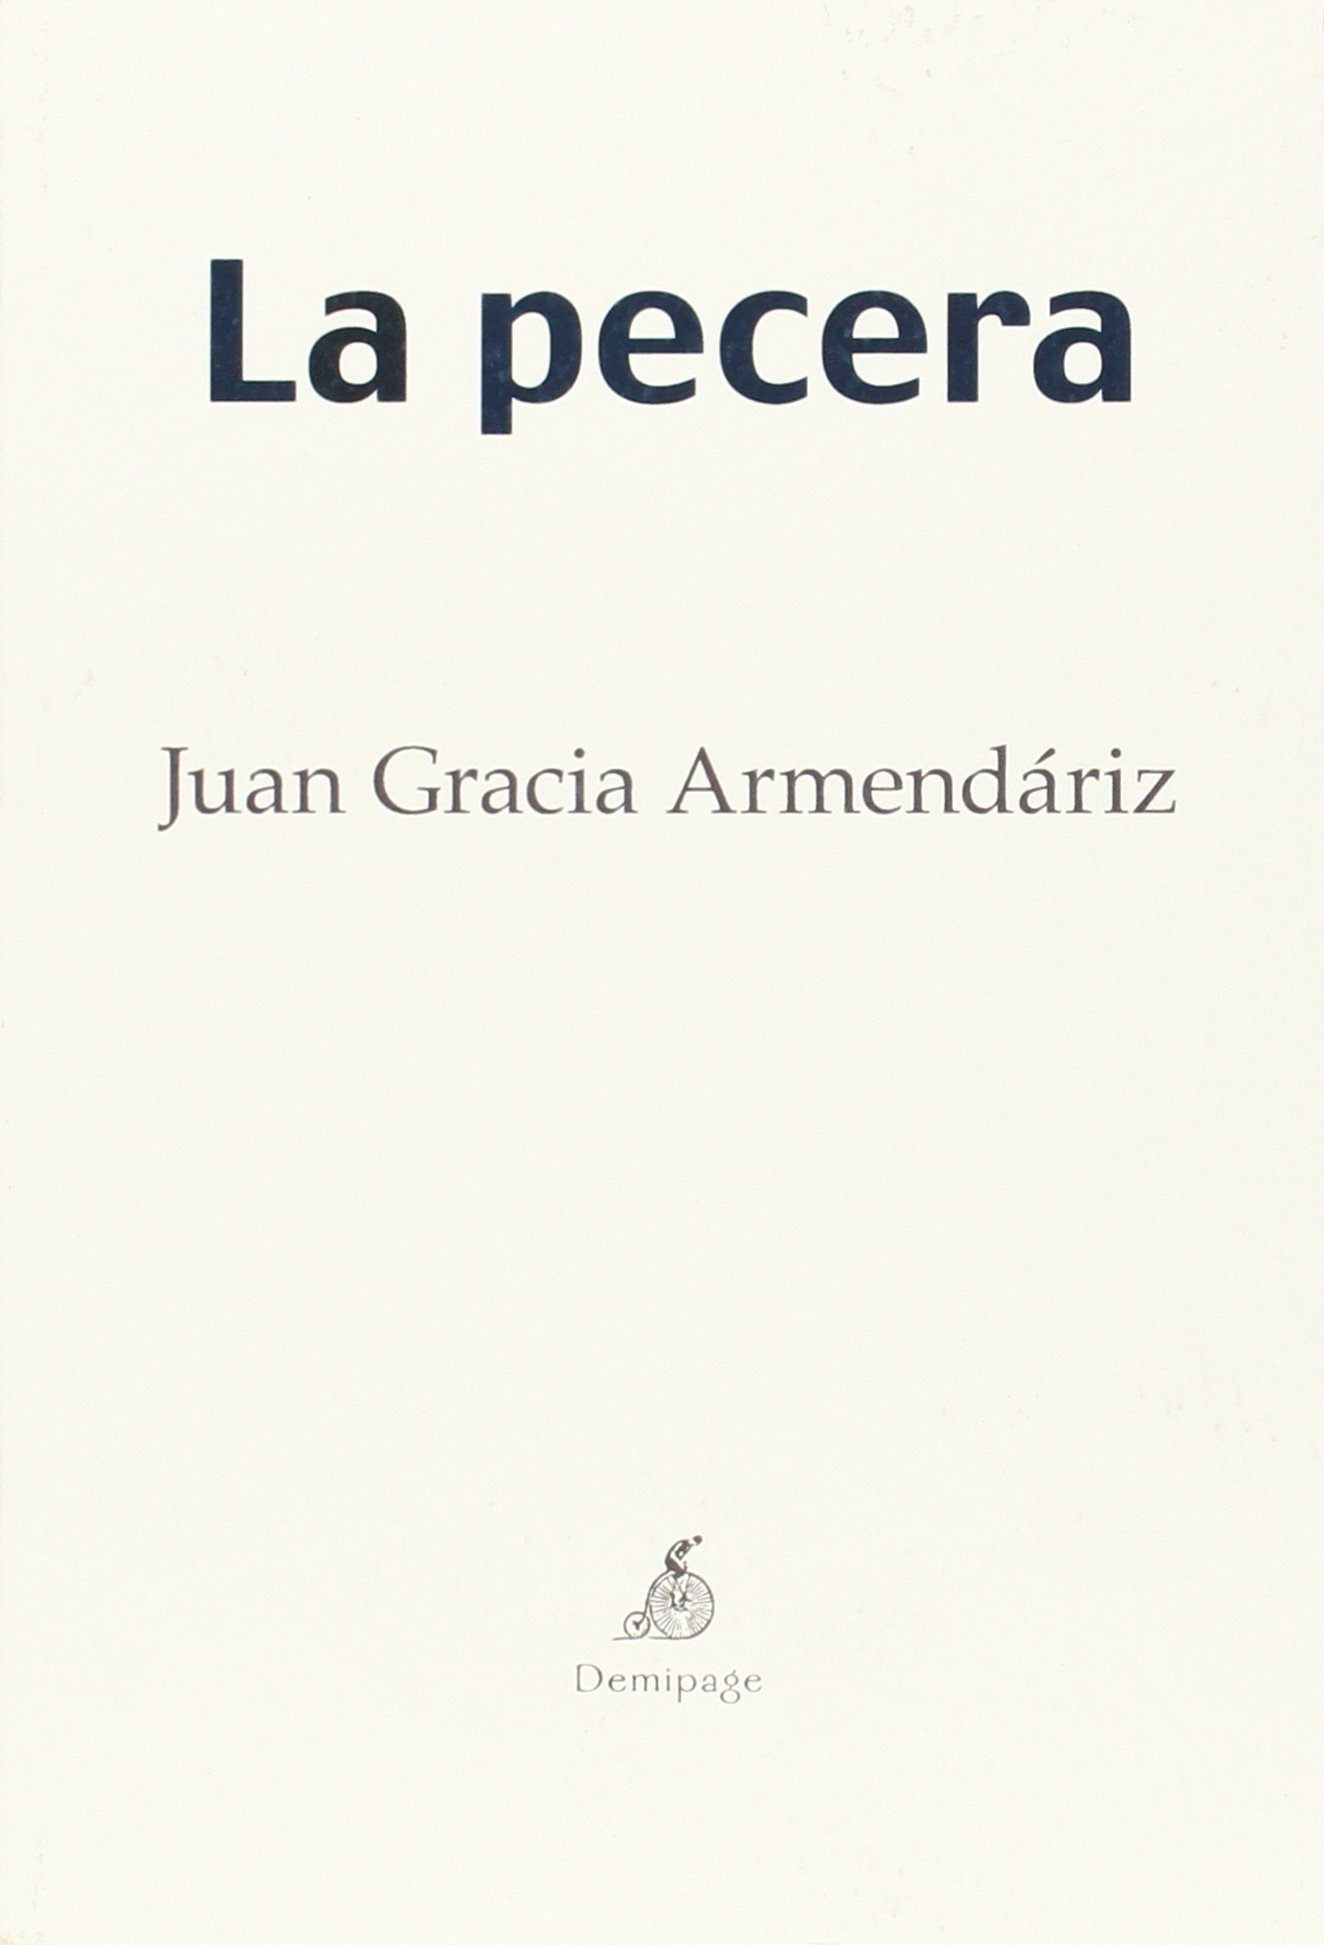 La pecera (Spanish) Paperback – January 1, 1900